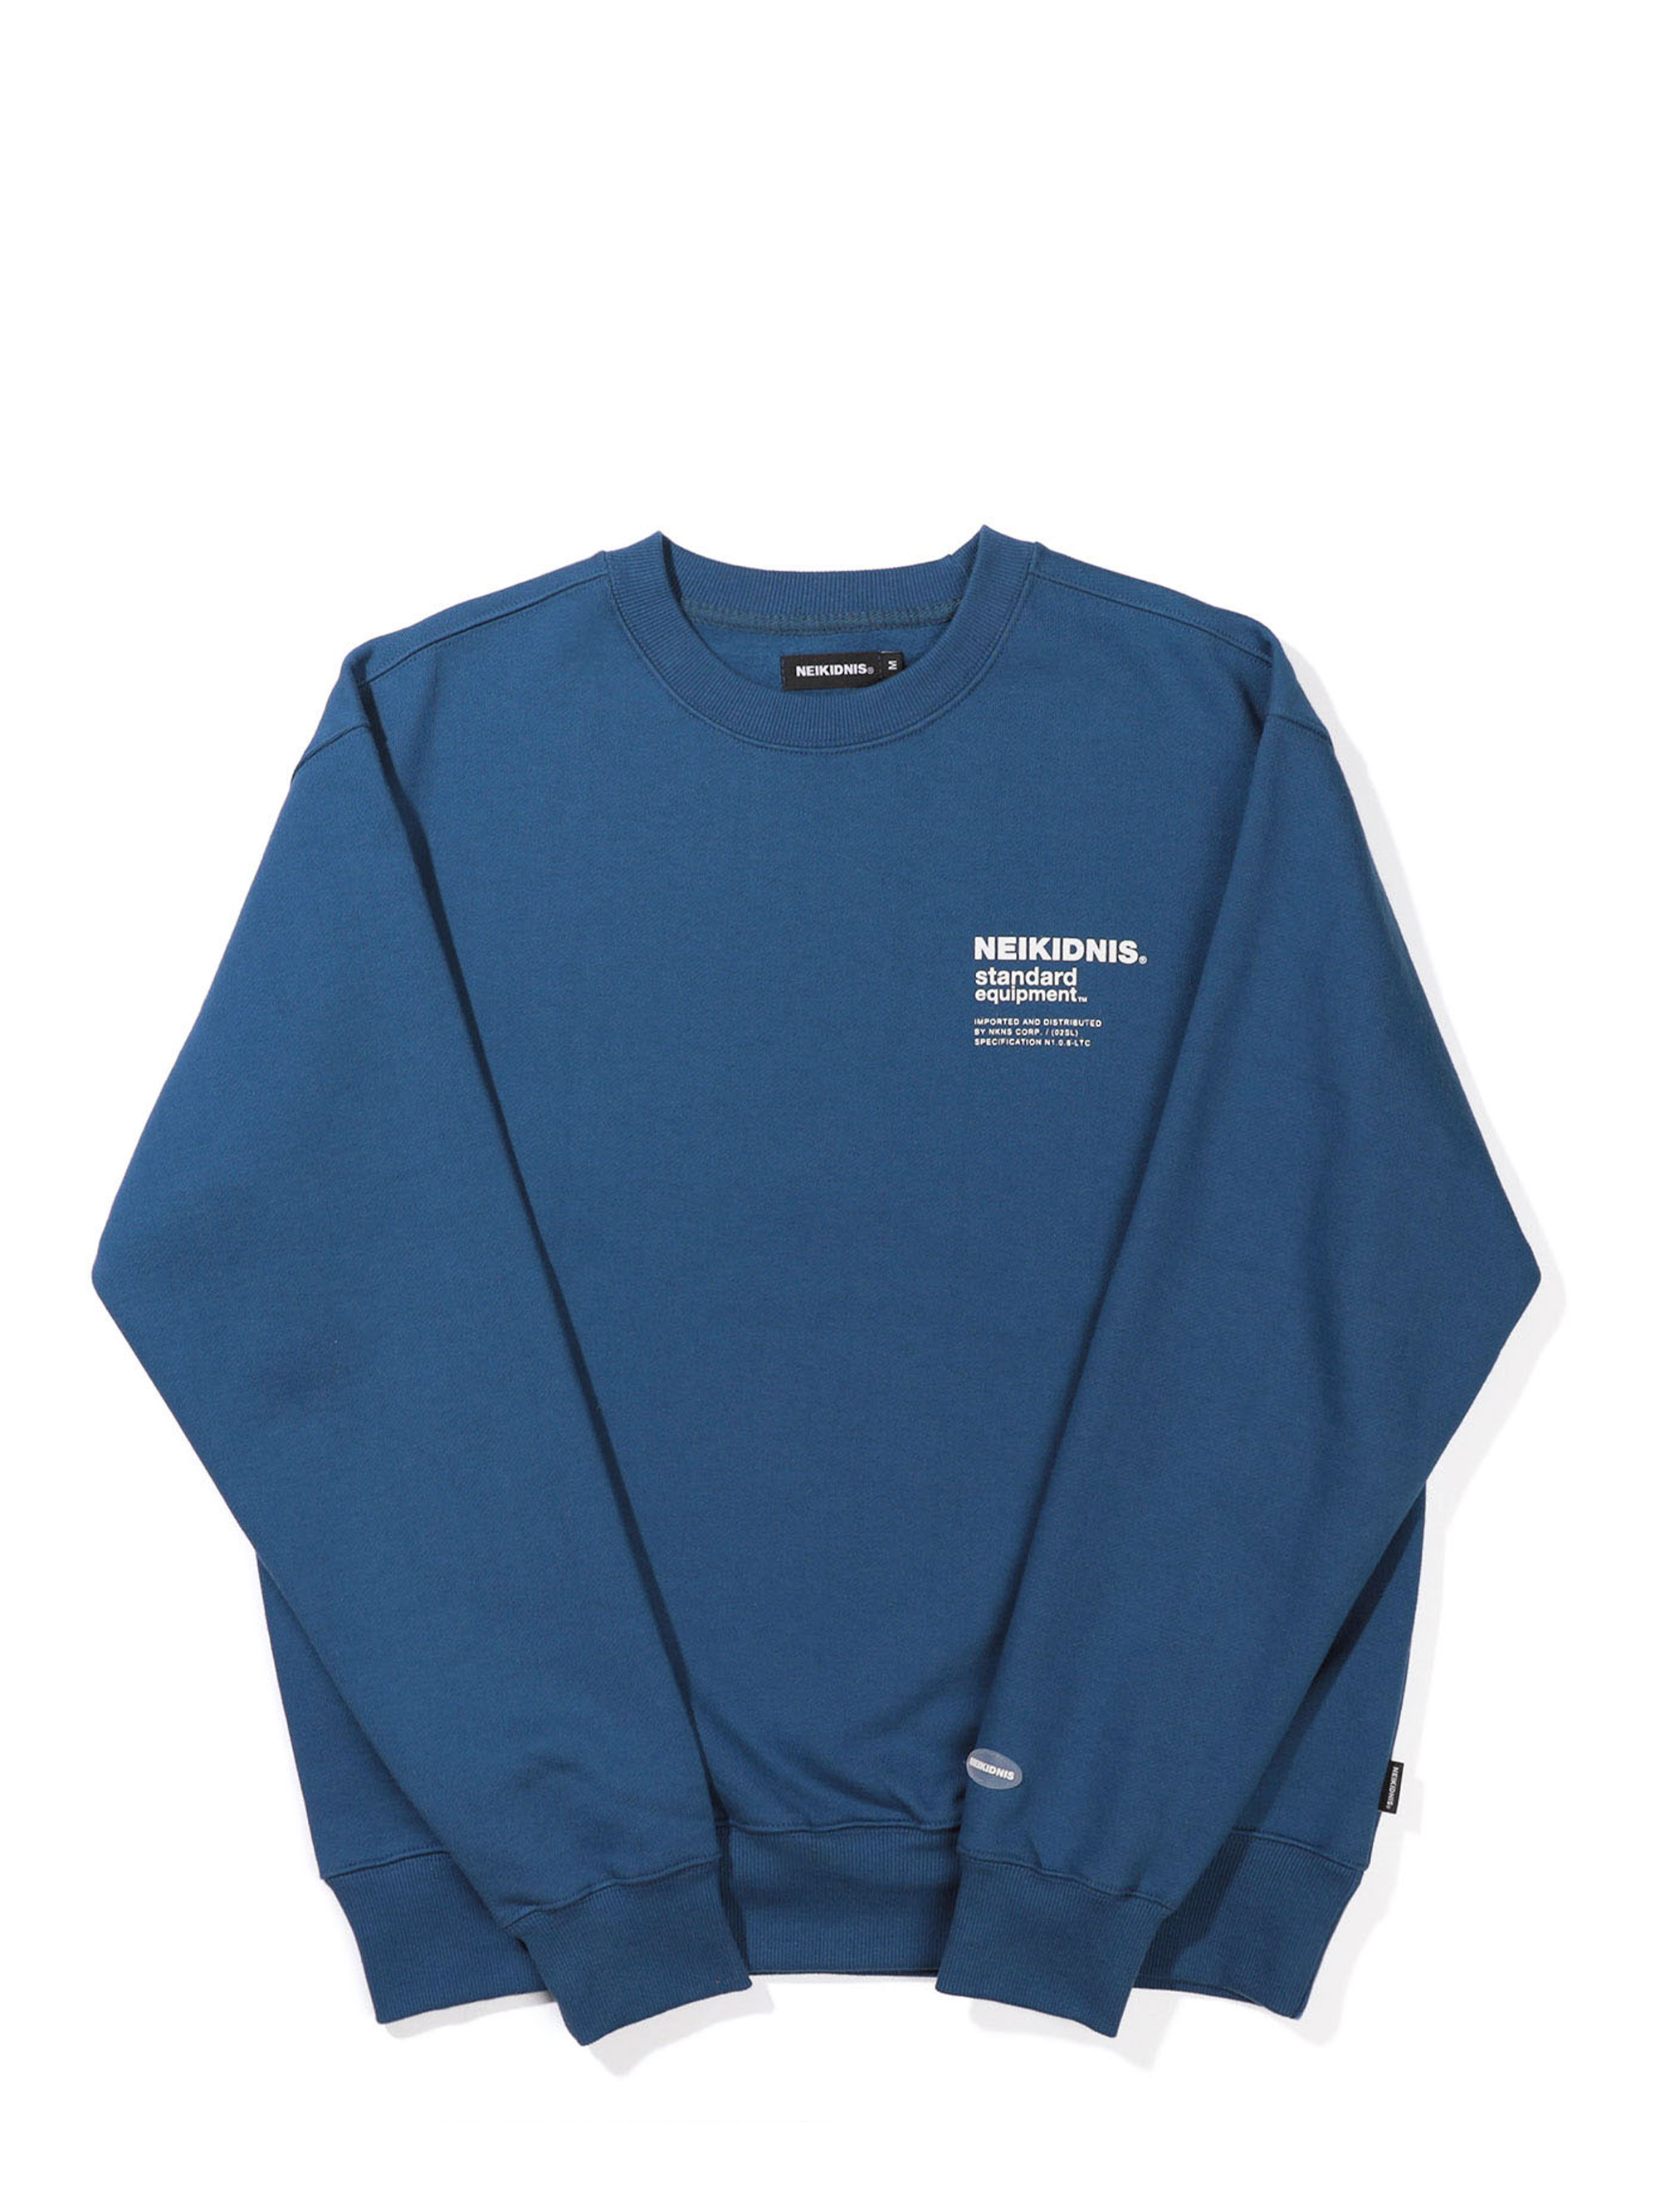 SPEC LOGO SWEAT SHIRT / INDIGO